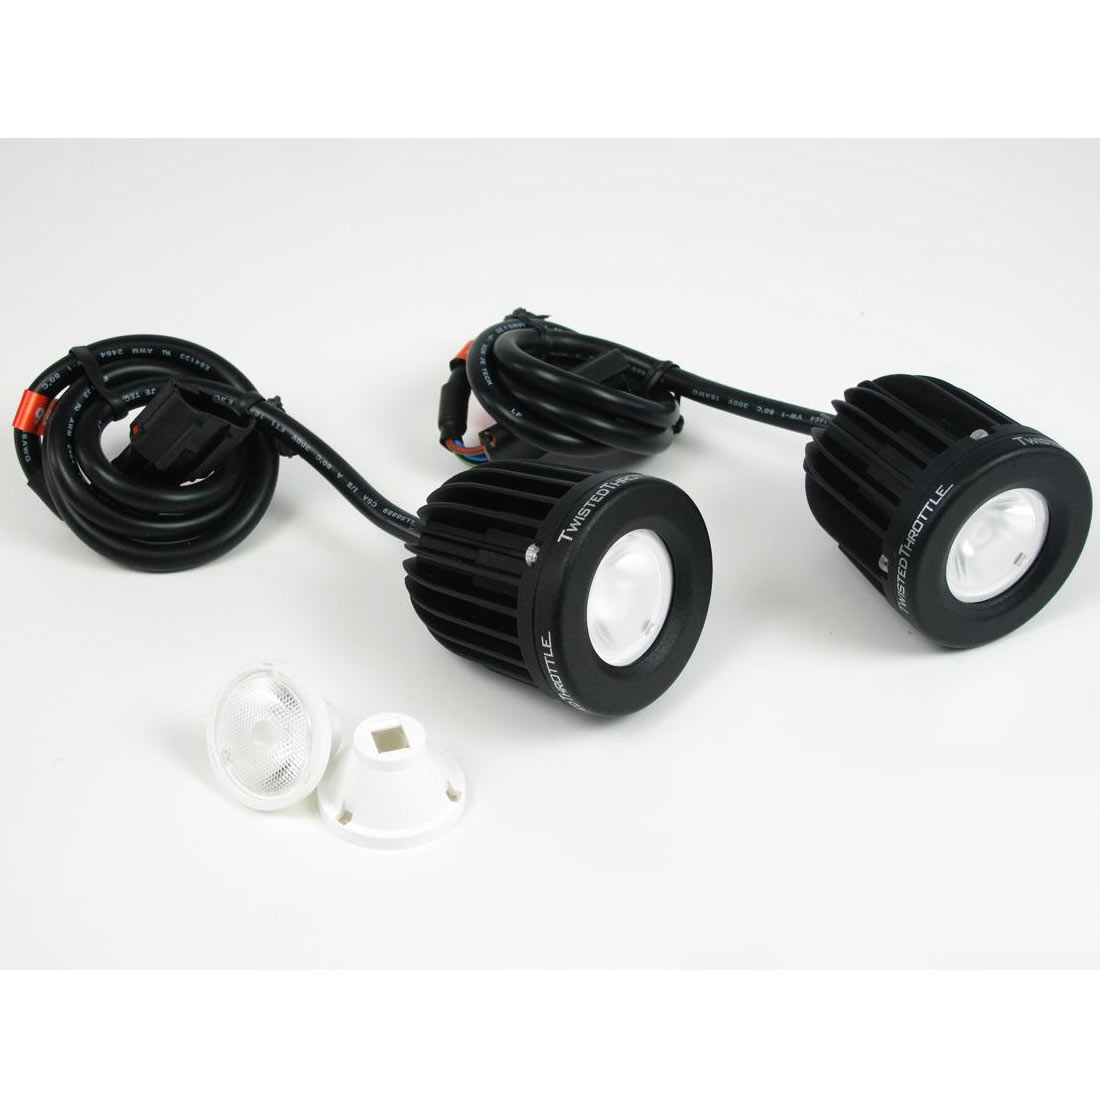 Denali D2 (Dual Intensity) LED Lighting Kit w/ Full Wiring Harness ...